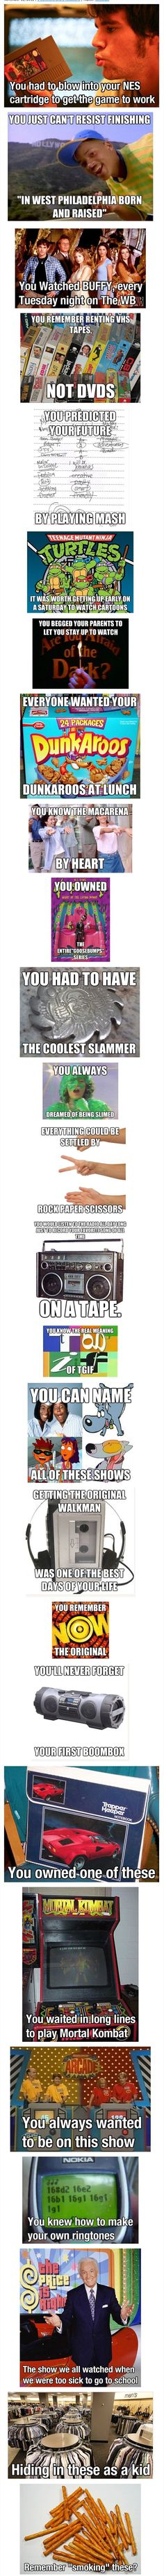 You know you were a 90's kid if you...